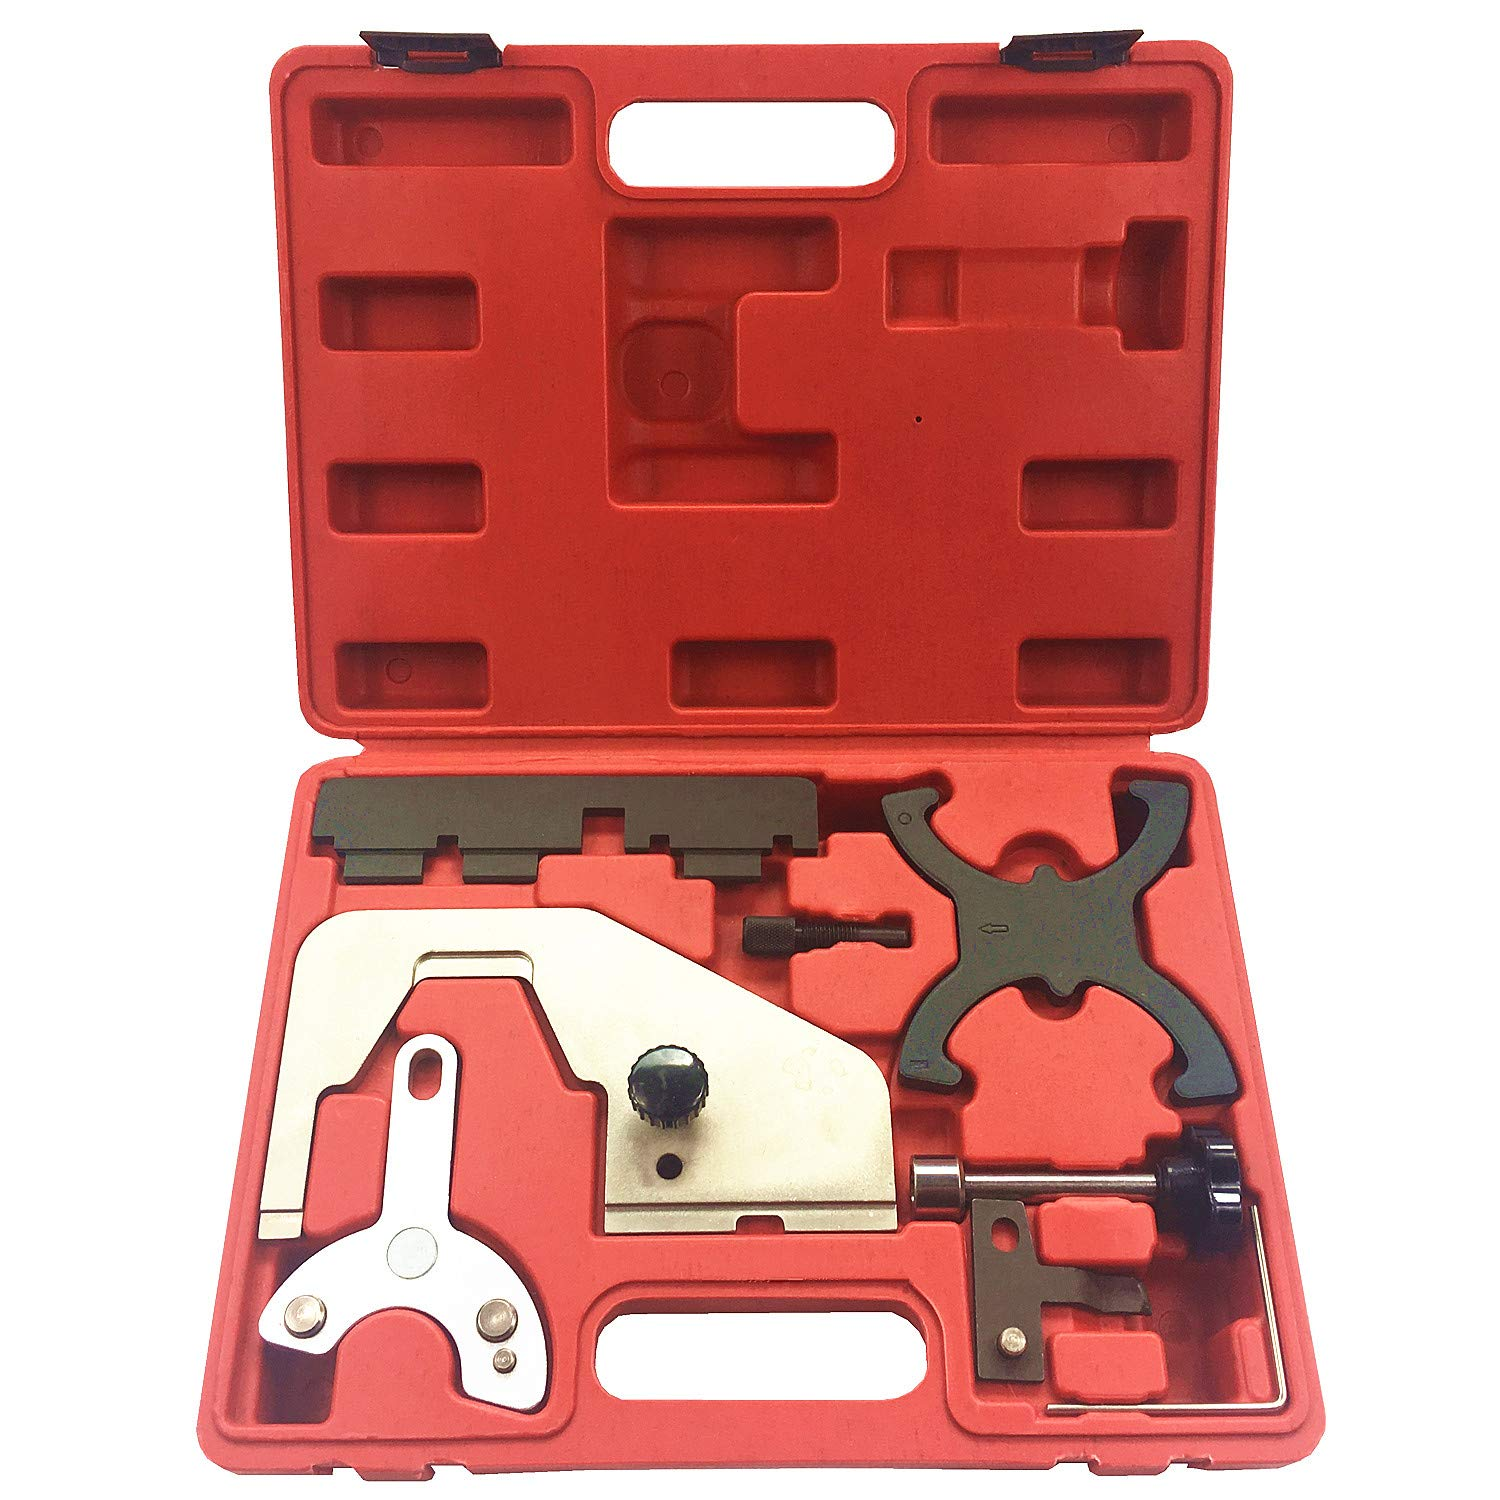 Best Q Engine camshaft Locking Tools for Ford 1.5T 1.6T and Volvo V4 1.6L 2.0L T4 T5 Timing Tool Set